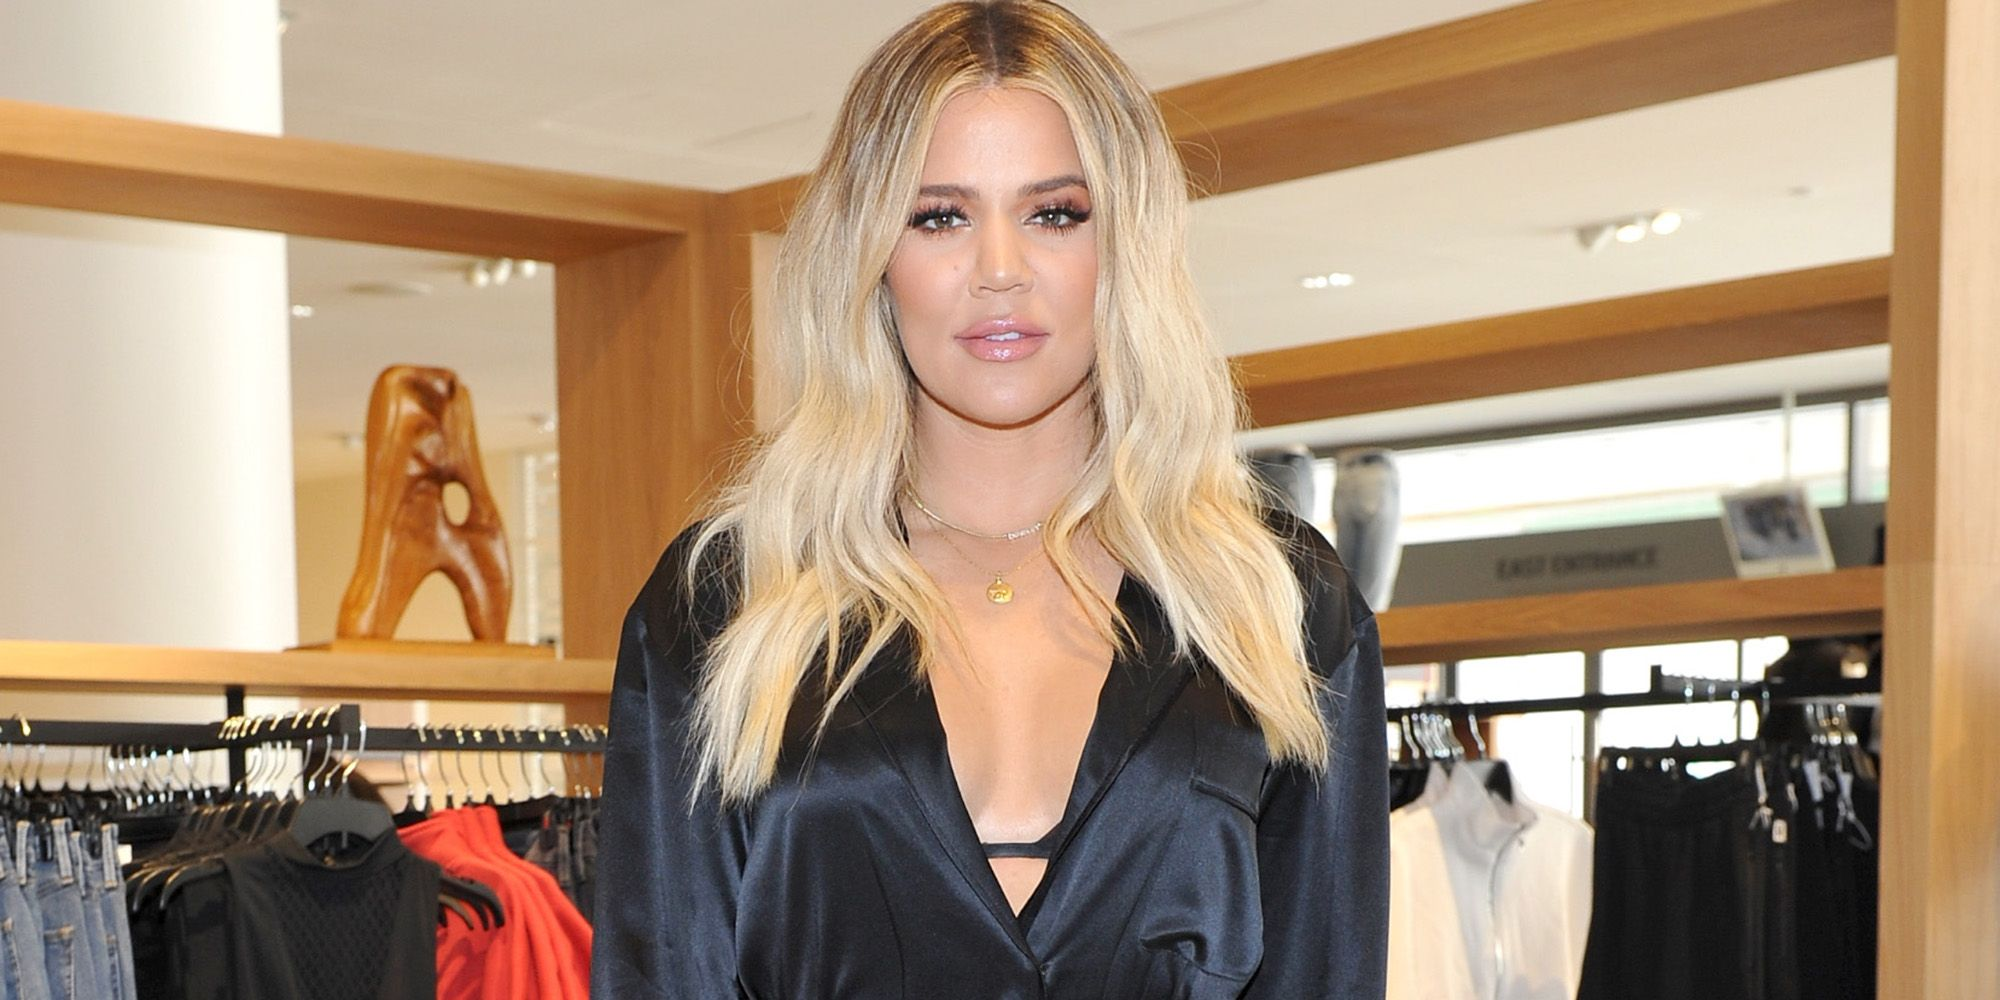 Khloe Kardashian Is Finally Sharing All The Juicy Details About How Her Pregnancy Is Really Going